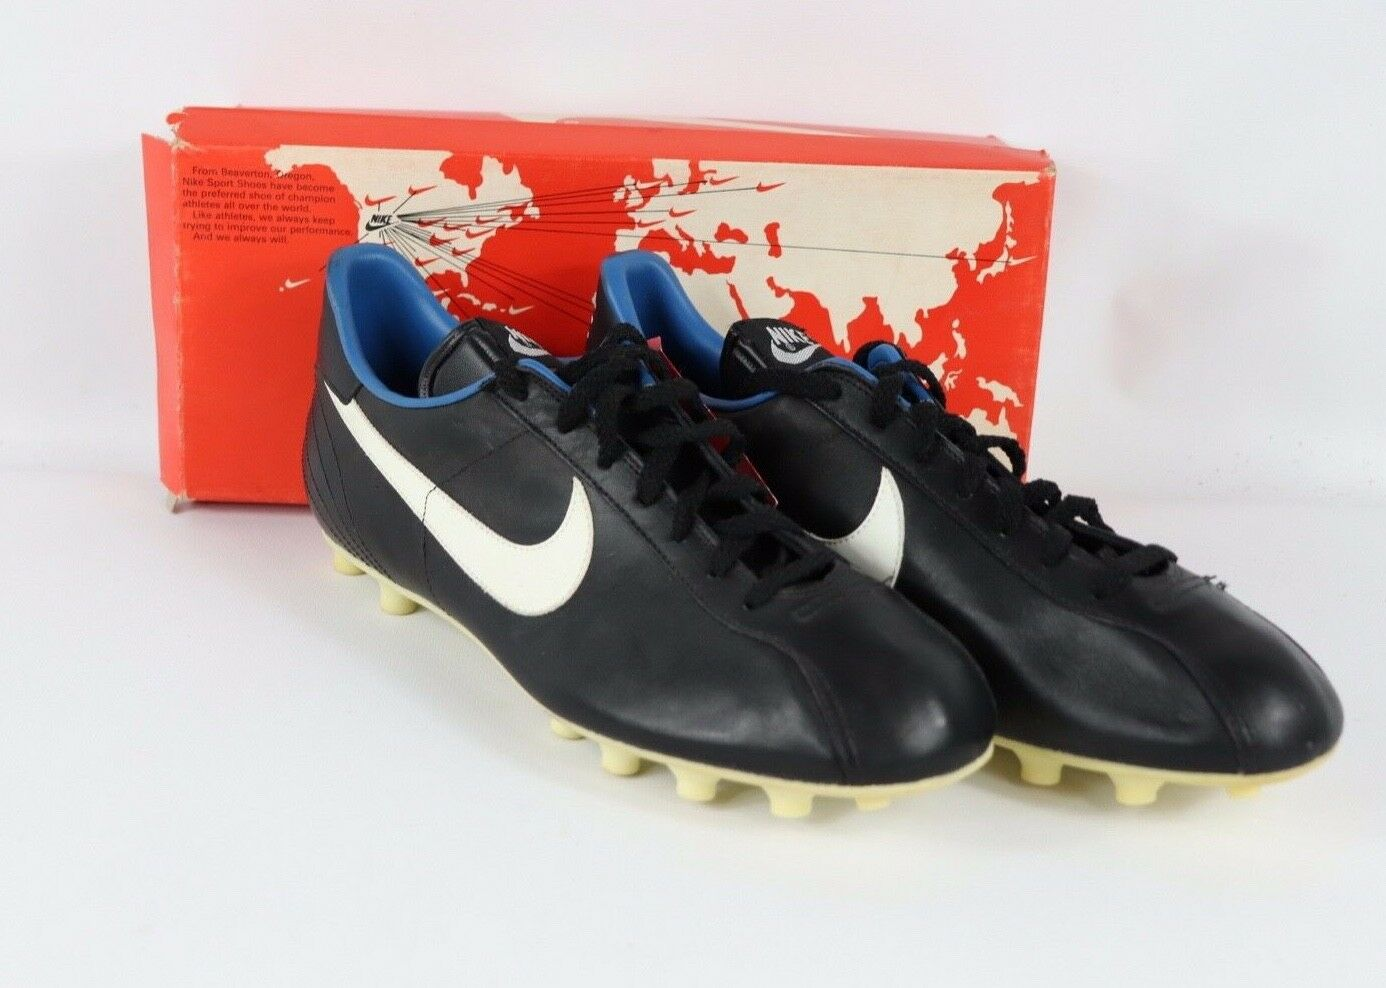 Vtg 80s New Nike Mens 9.5 United Leather Soccer shoes Cleats Boots Black White